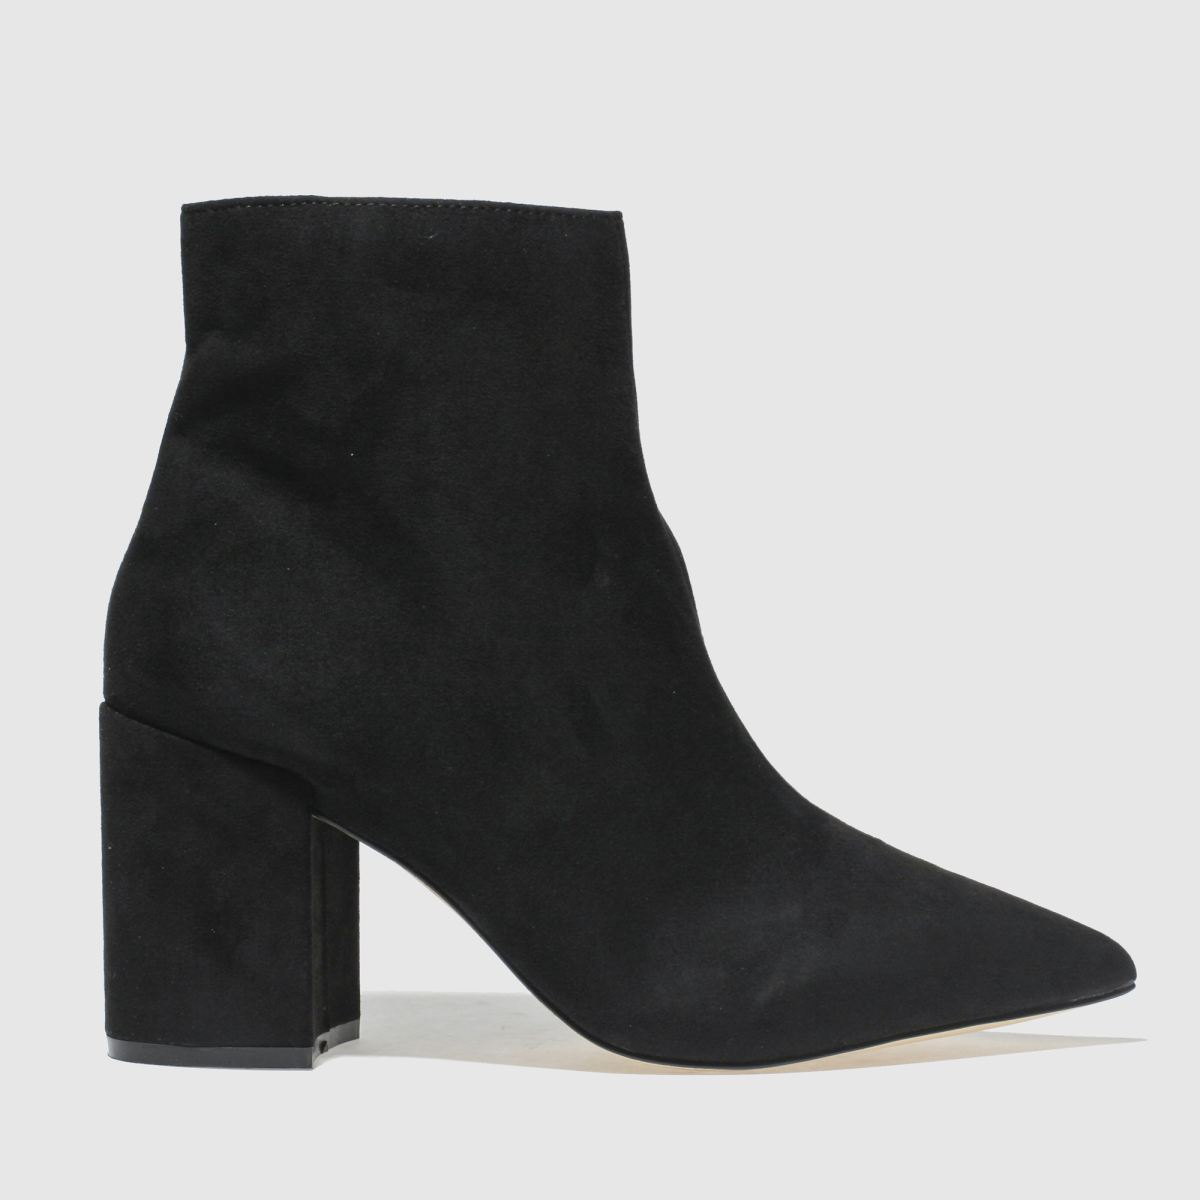 Schuh Black On Point Boots